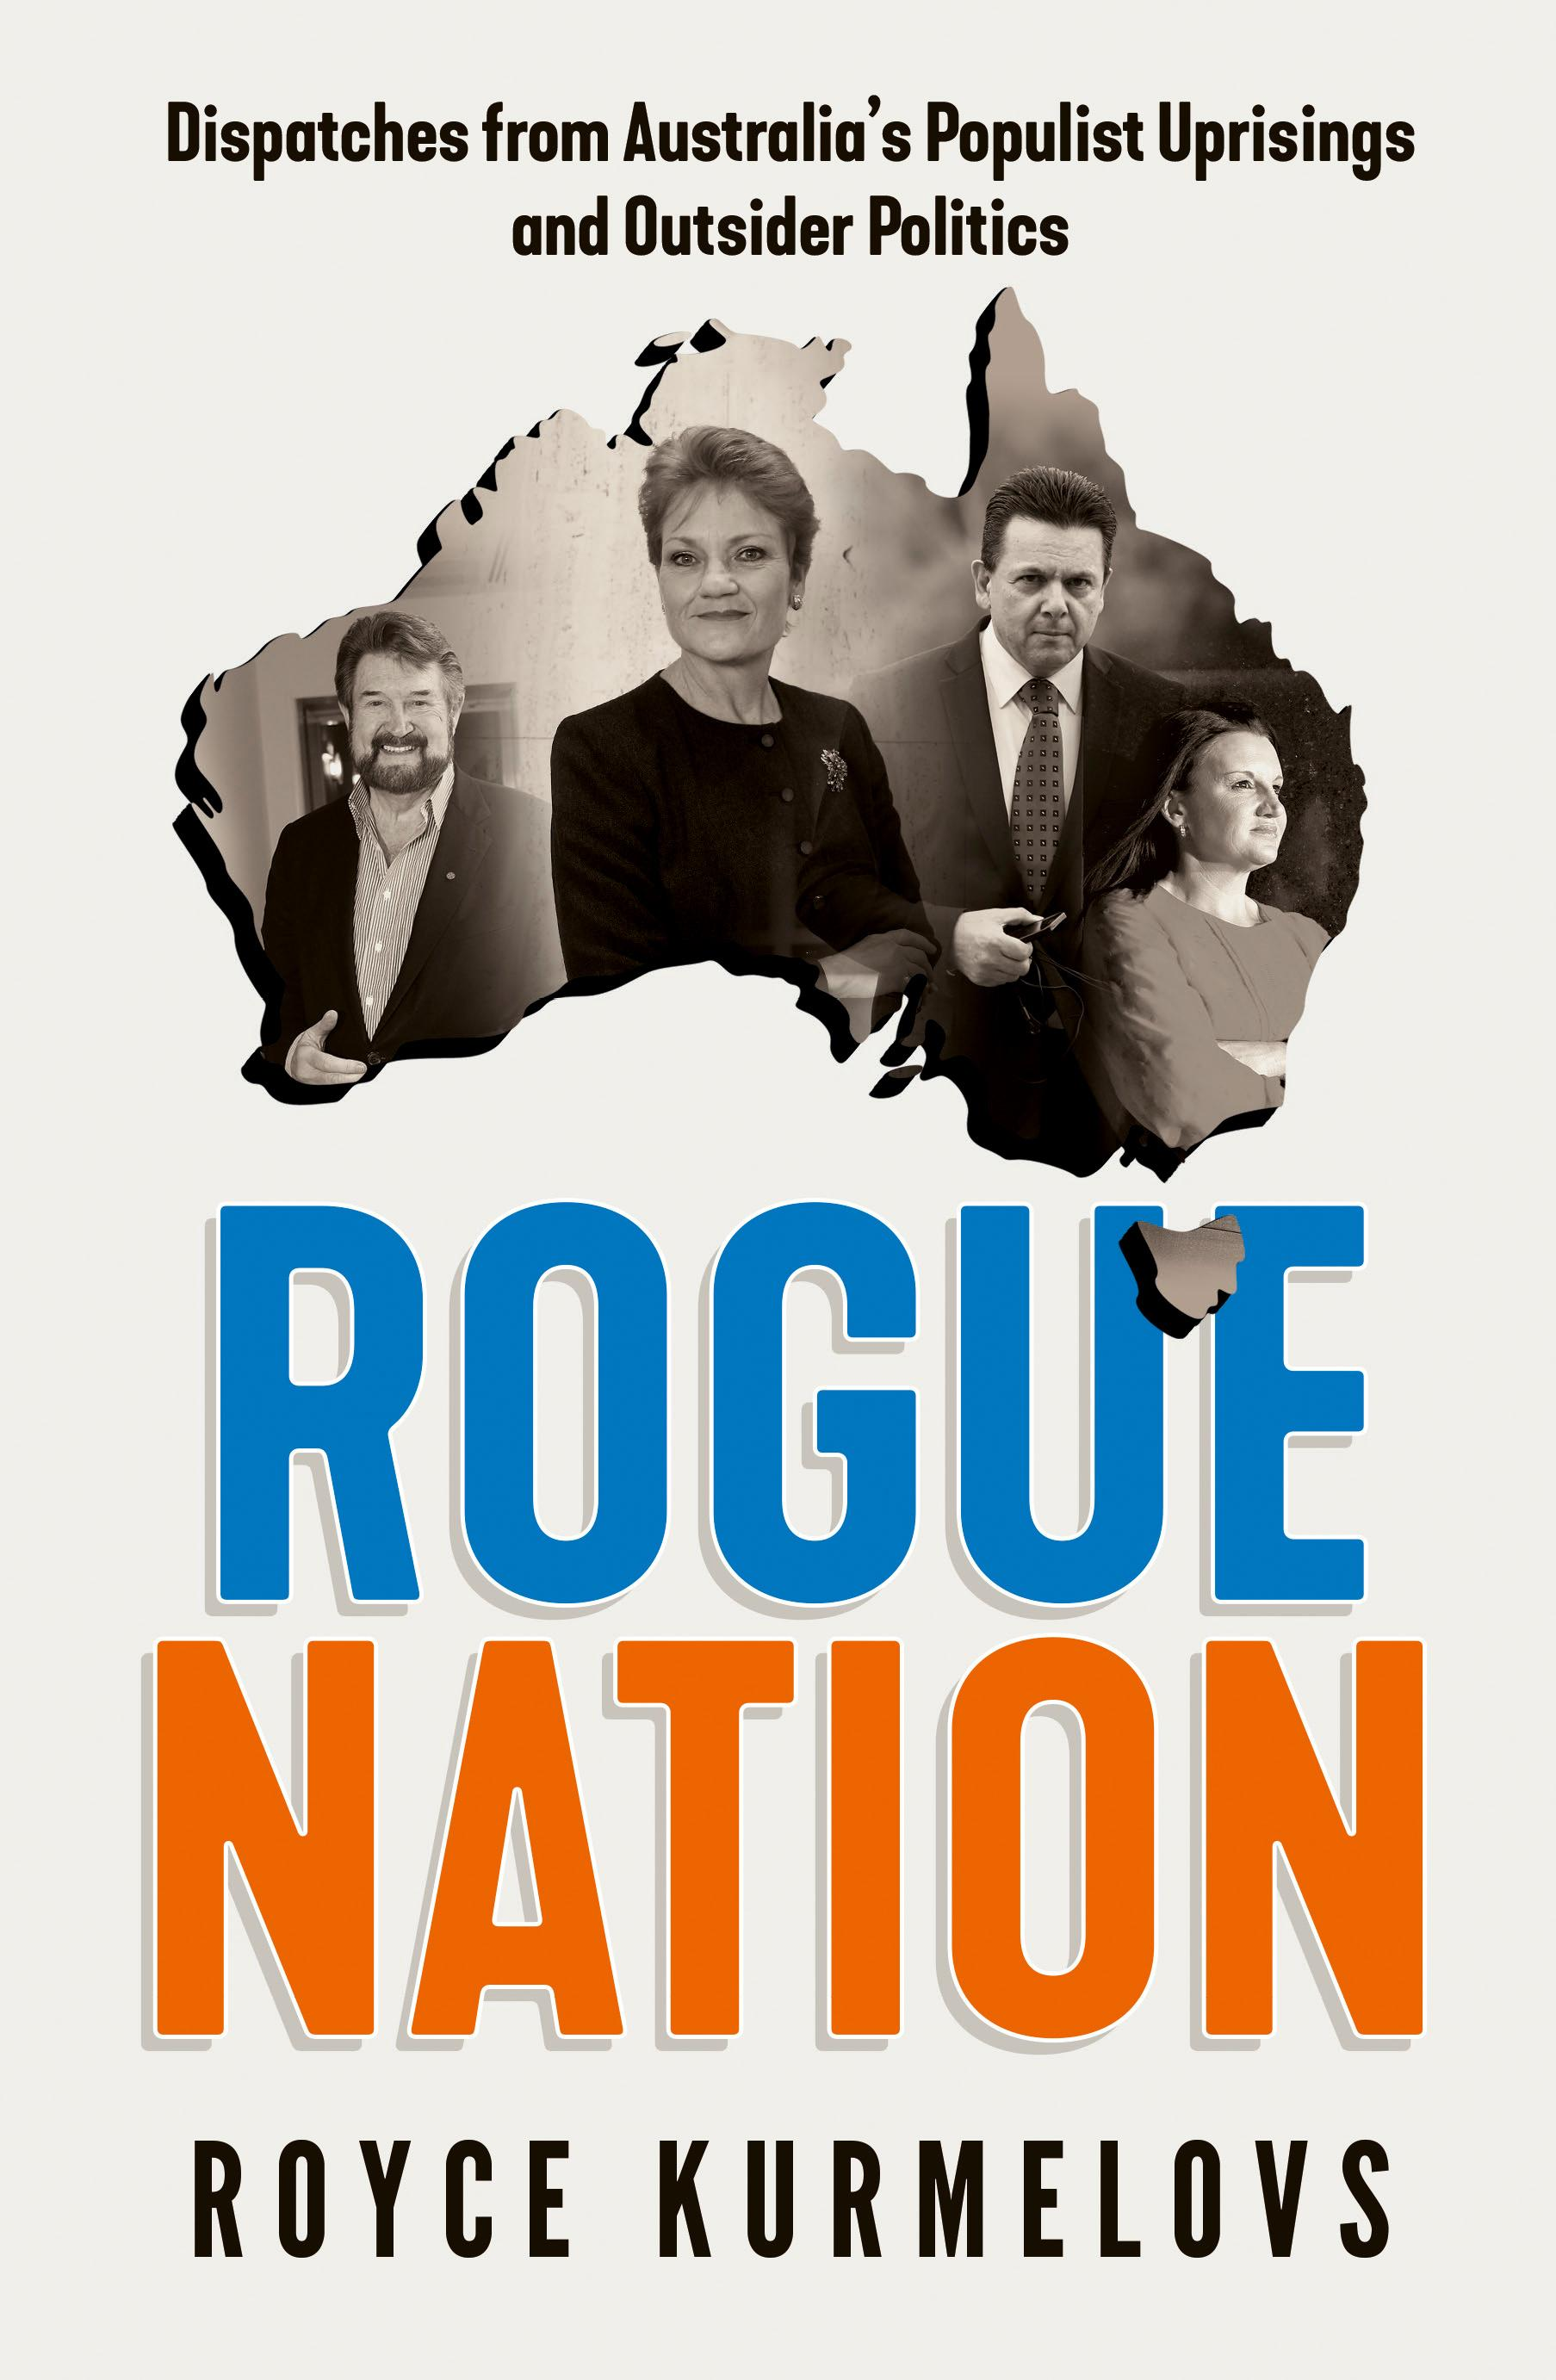 Rogue Nation: Fascinating, relevant, compelling - the one book about Australian politics you must read